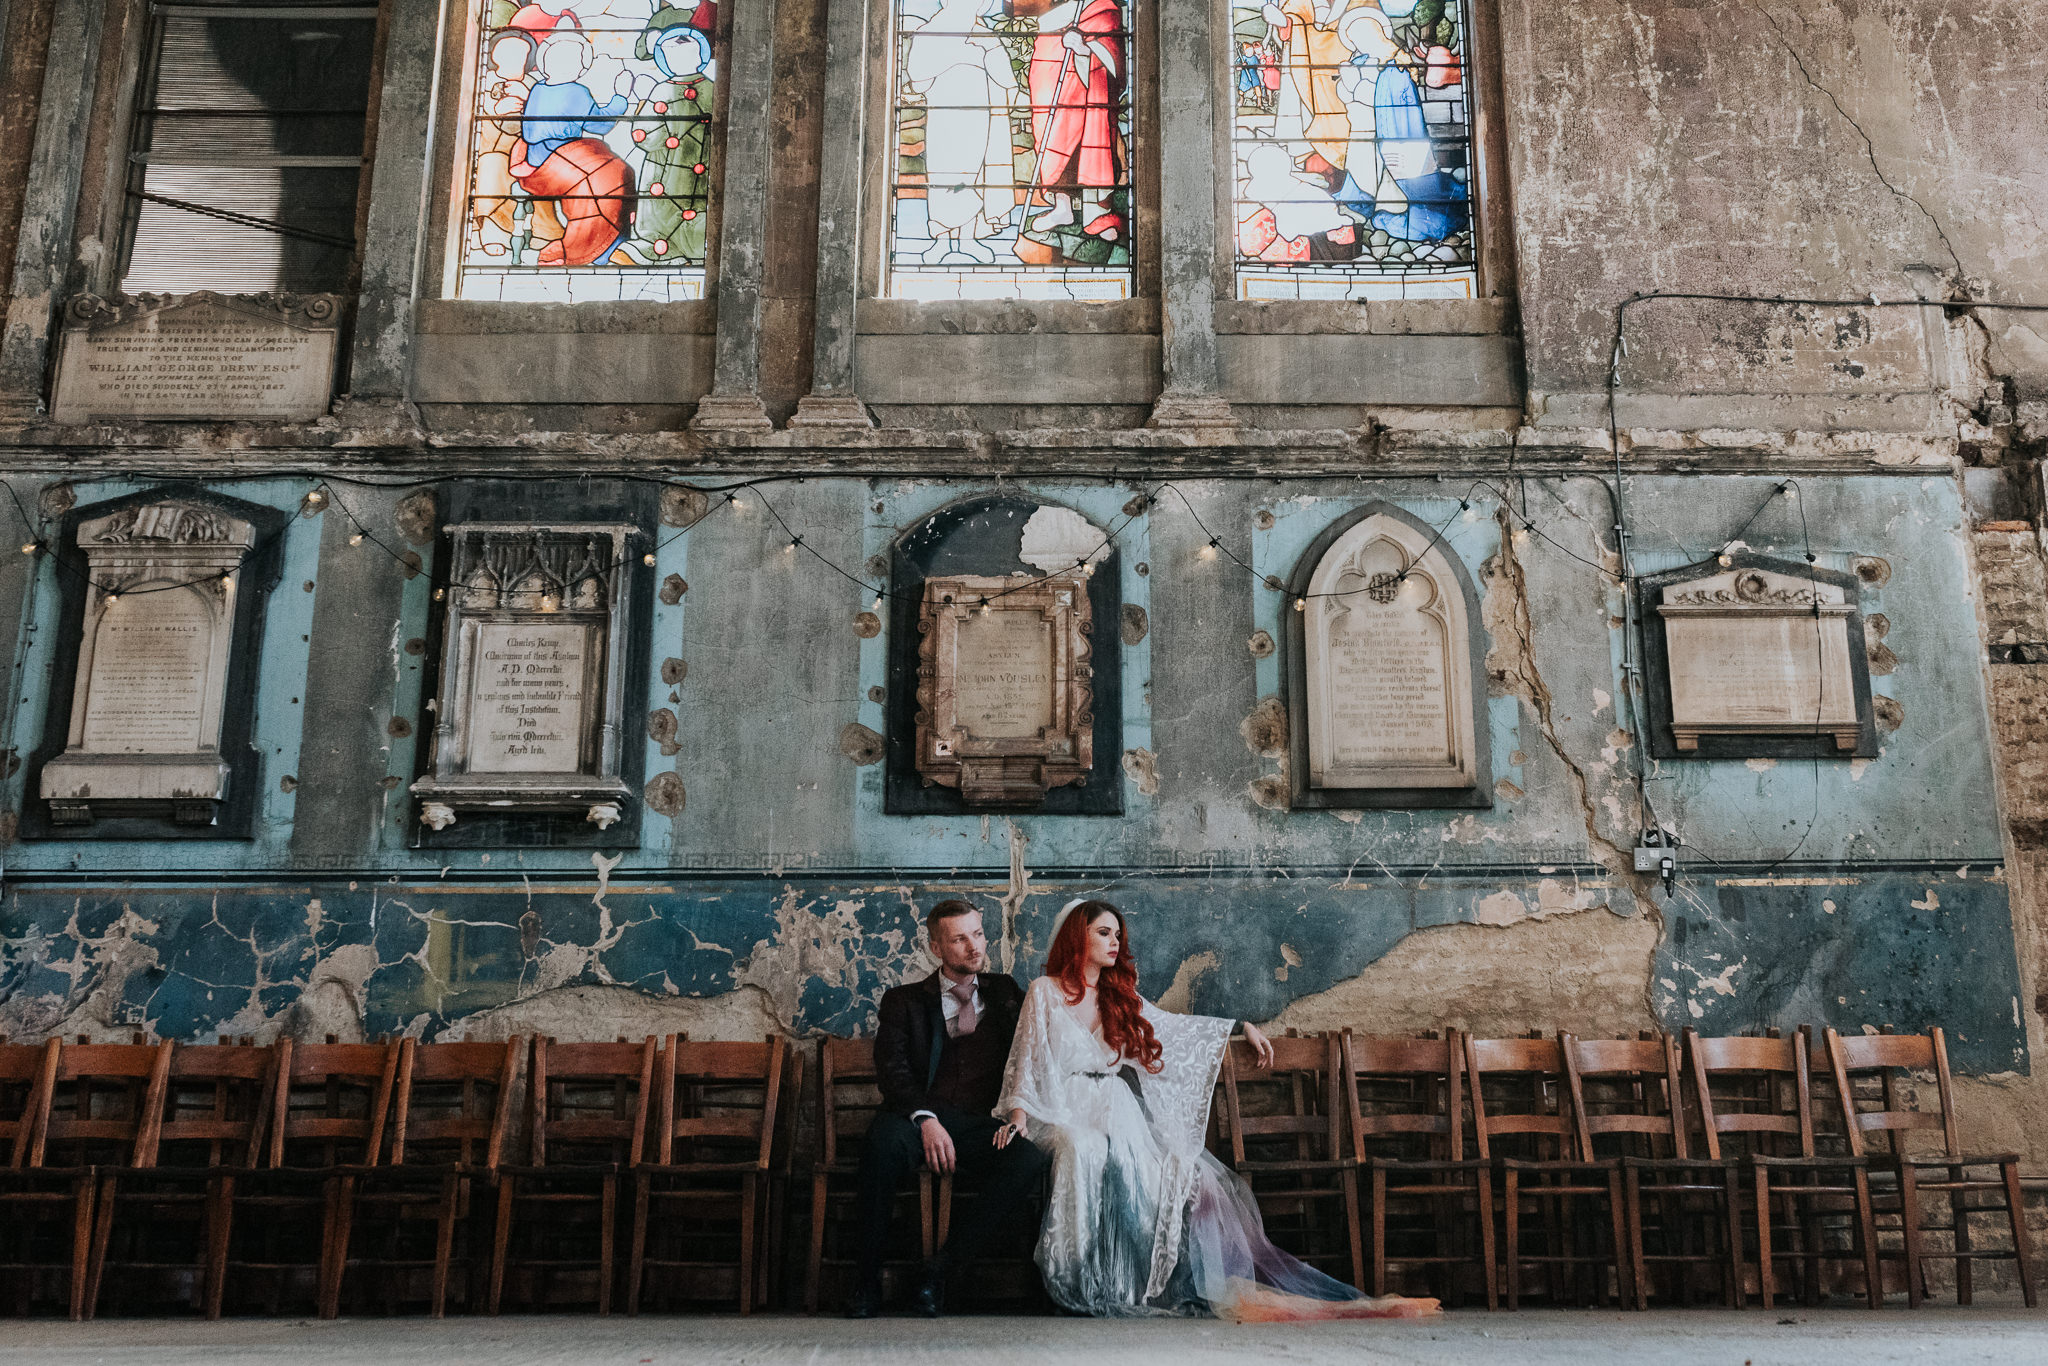 alternative chapel wedding- asylum london- unique london wedding venue- london wedding venue- Jenny Appleton Photography- chapel wedding venue- alternative wedding venue